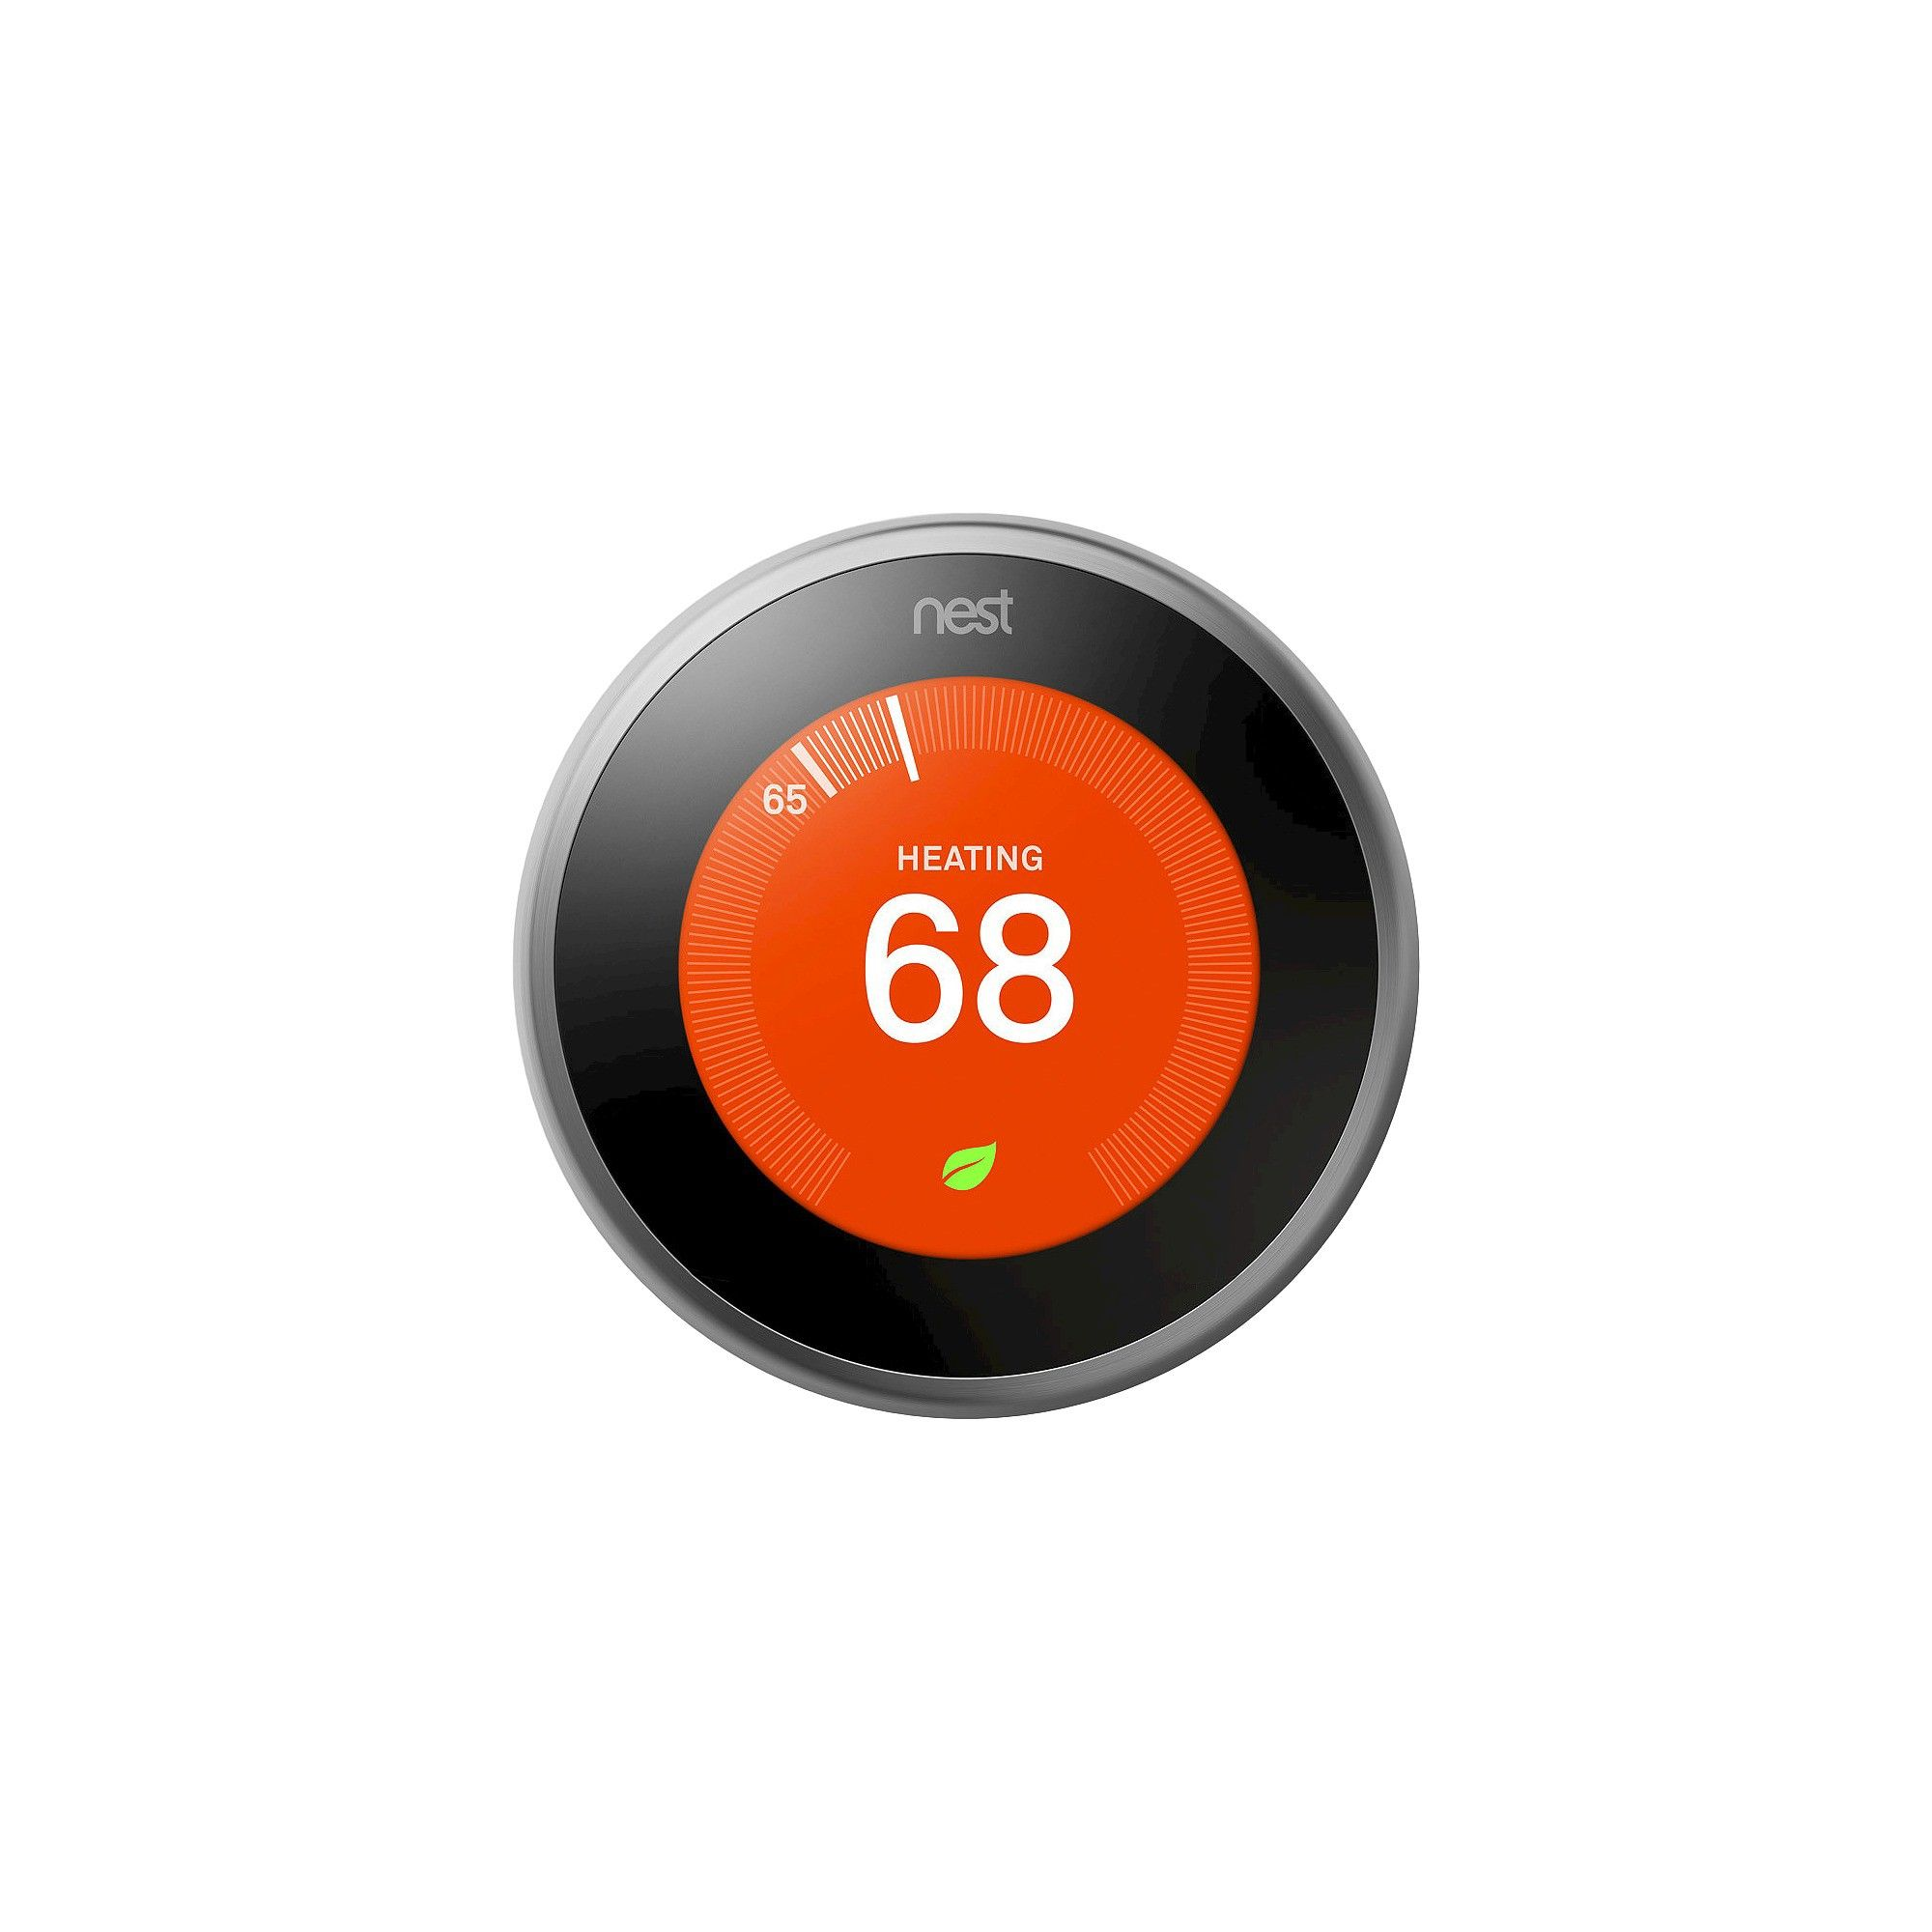 How to Install the Nest Thermostat Nest learning